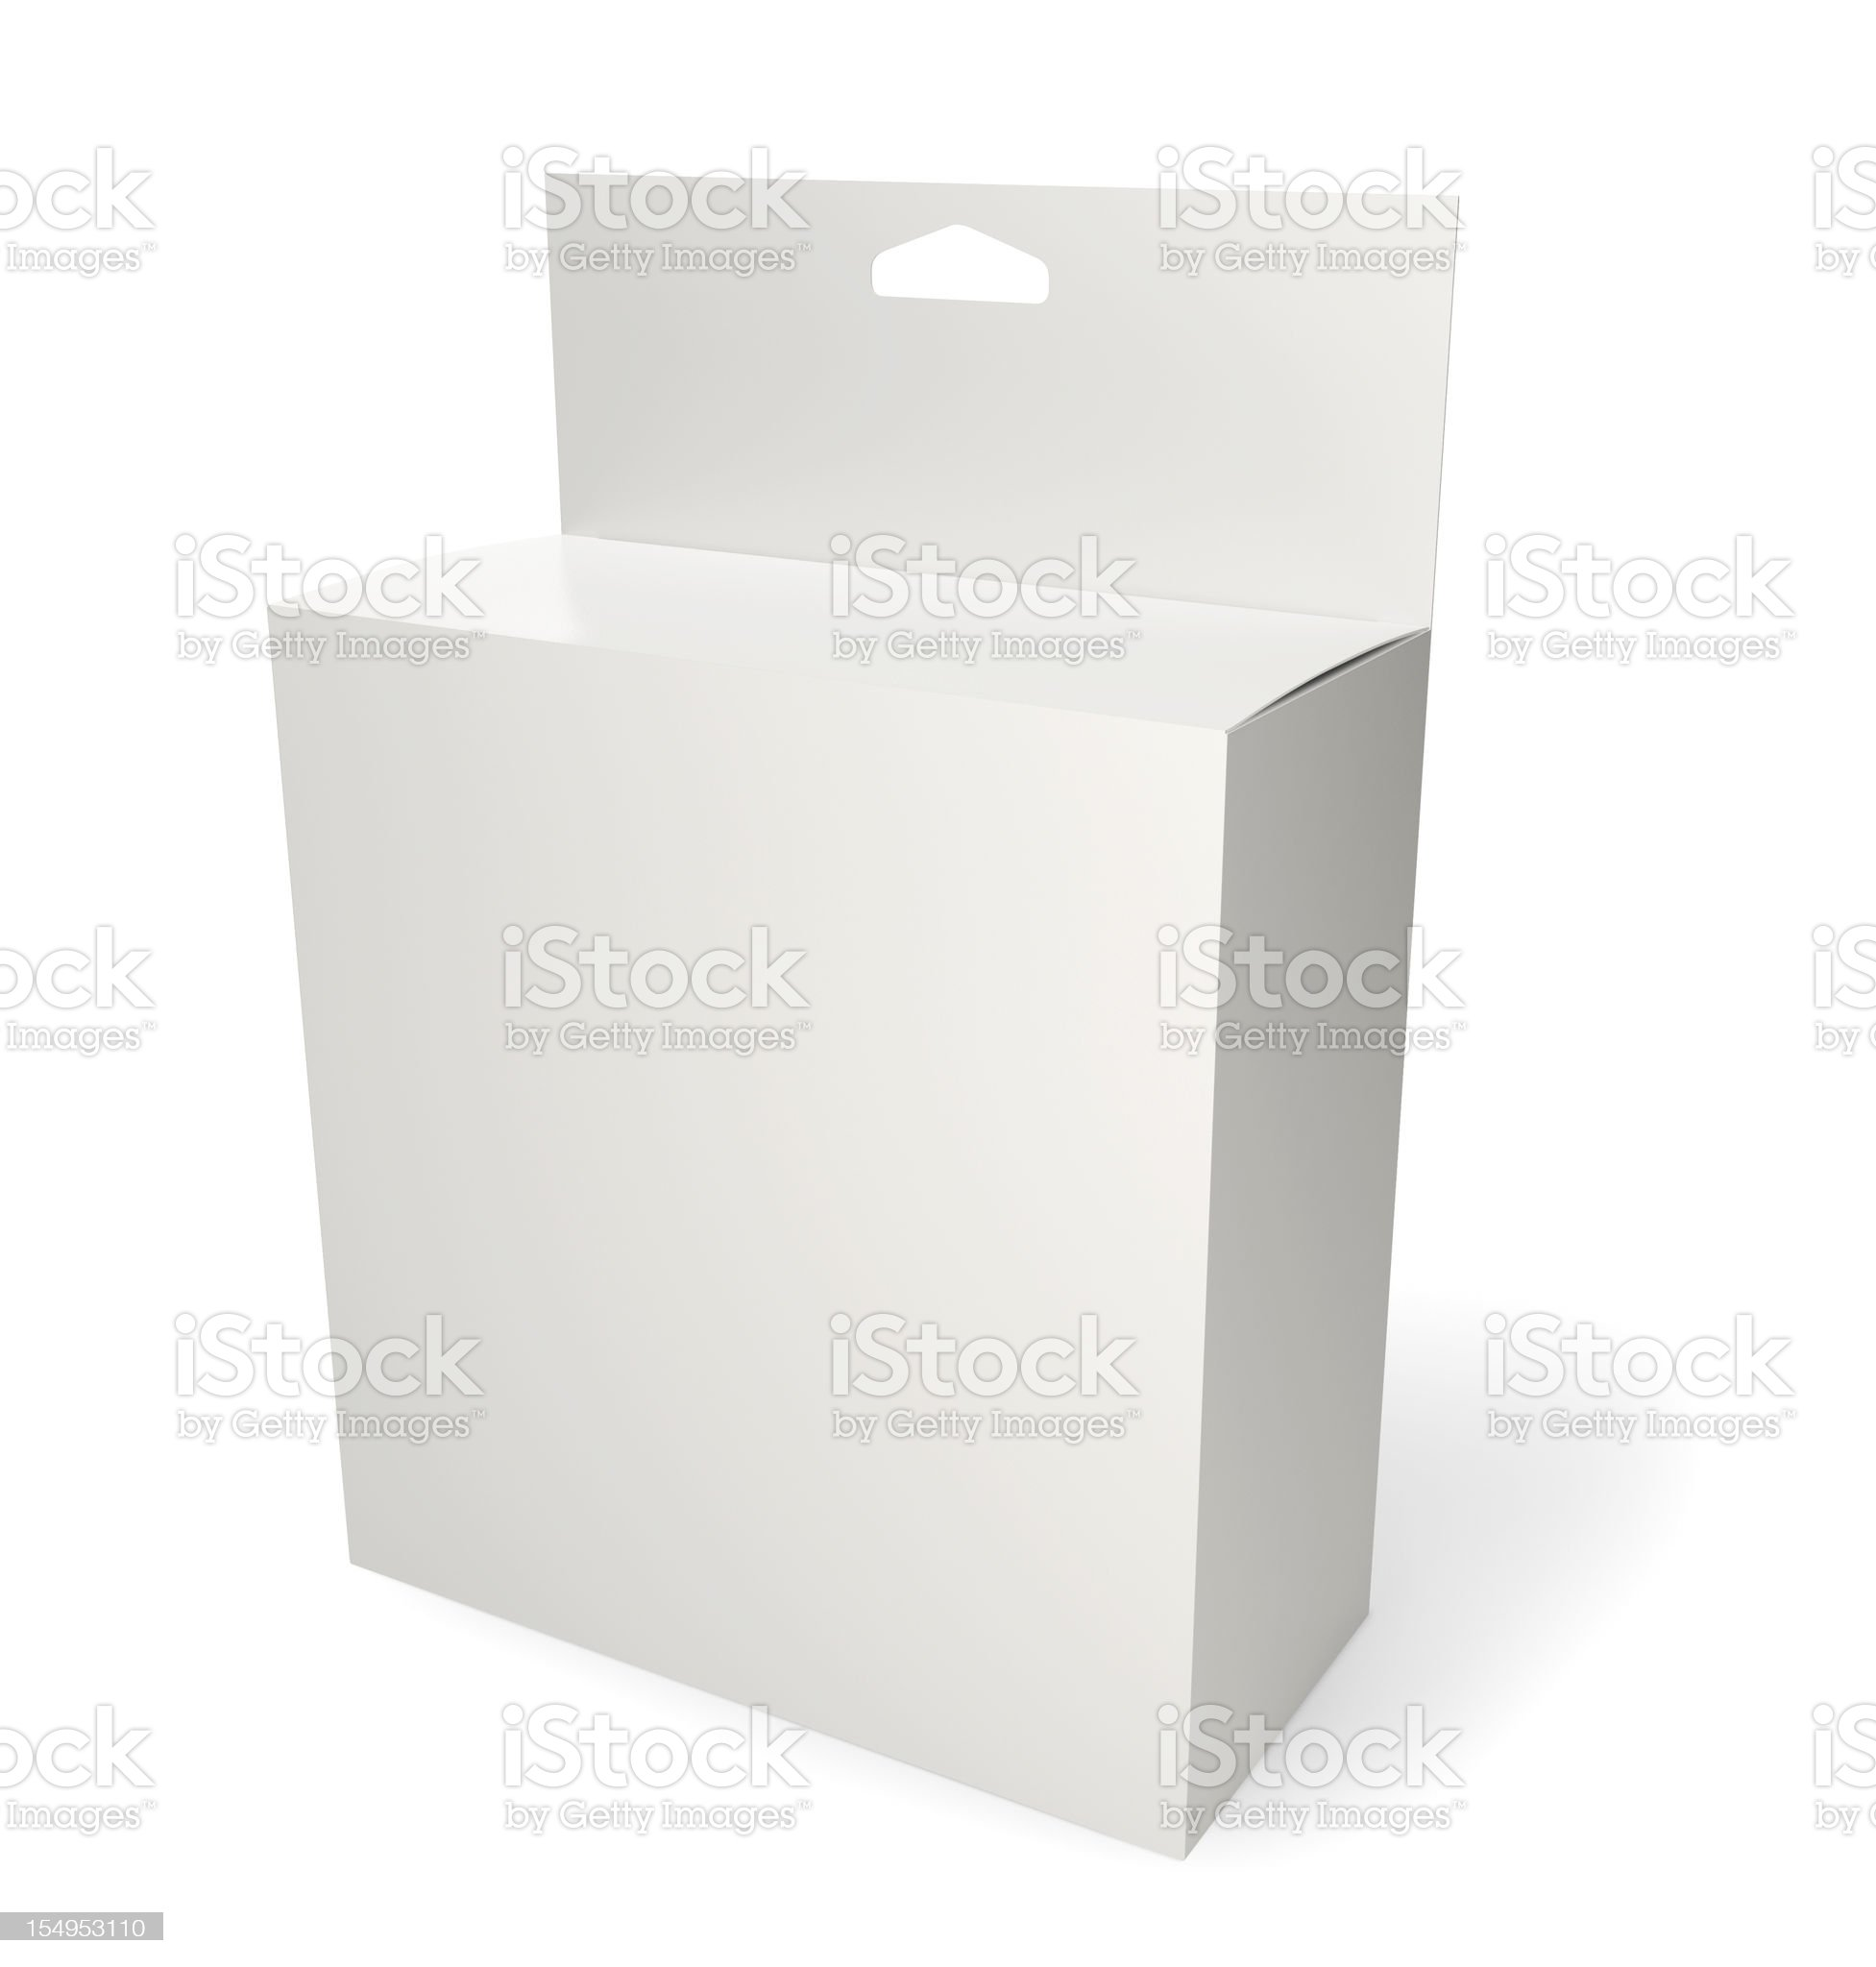 Blank retail product package isolated on white royalty-free stock photo